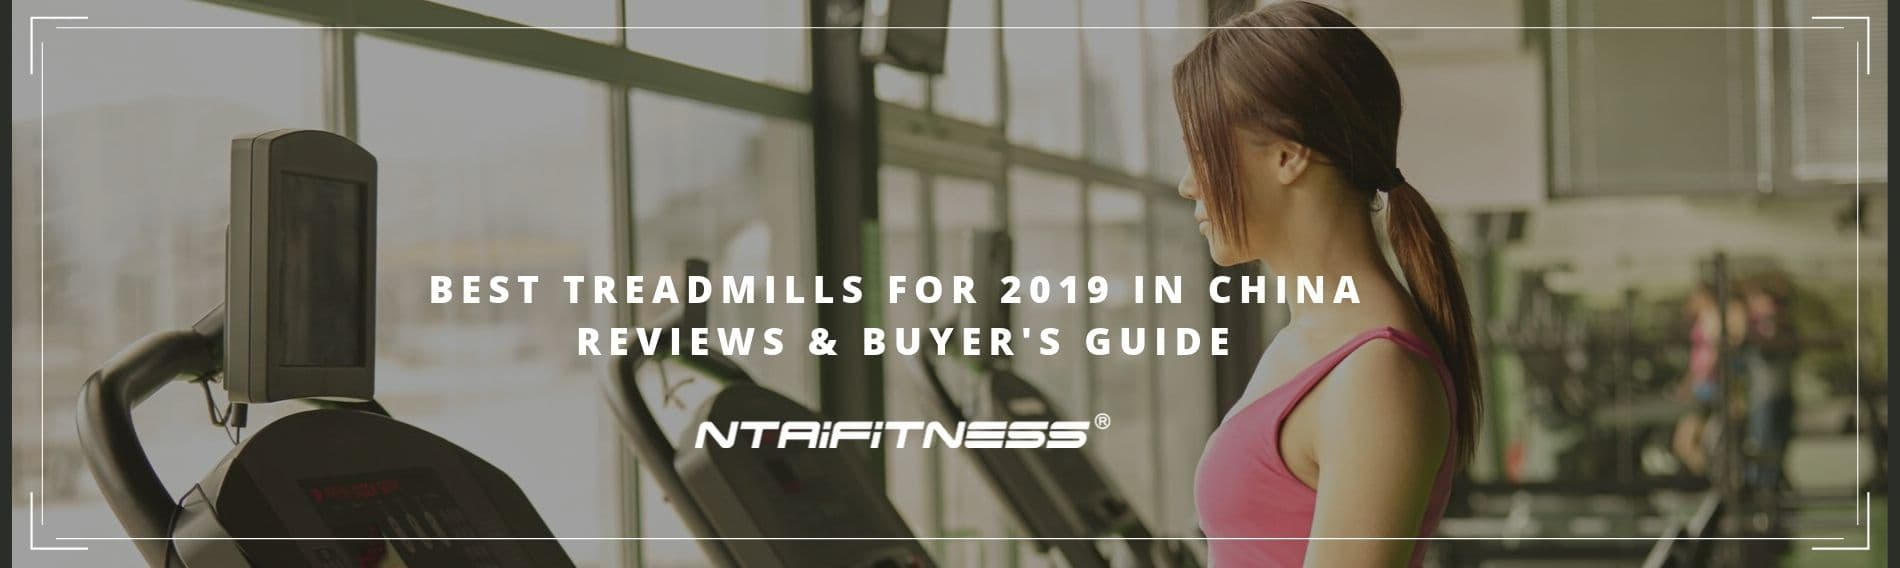 Best Treadmills for 2019 in China - Reviews & Buyer's Guide